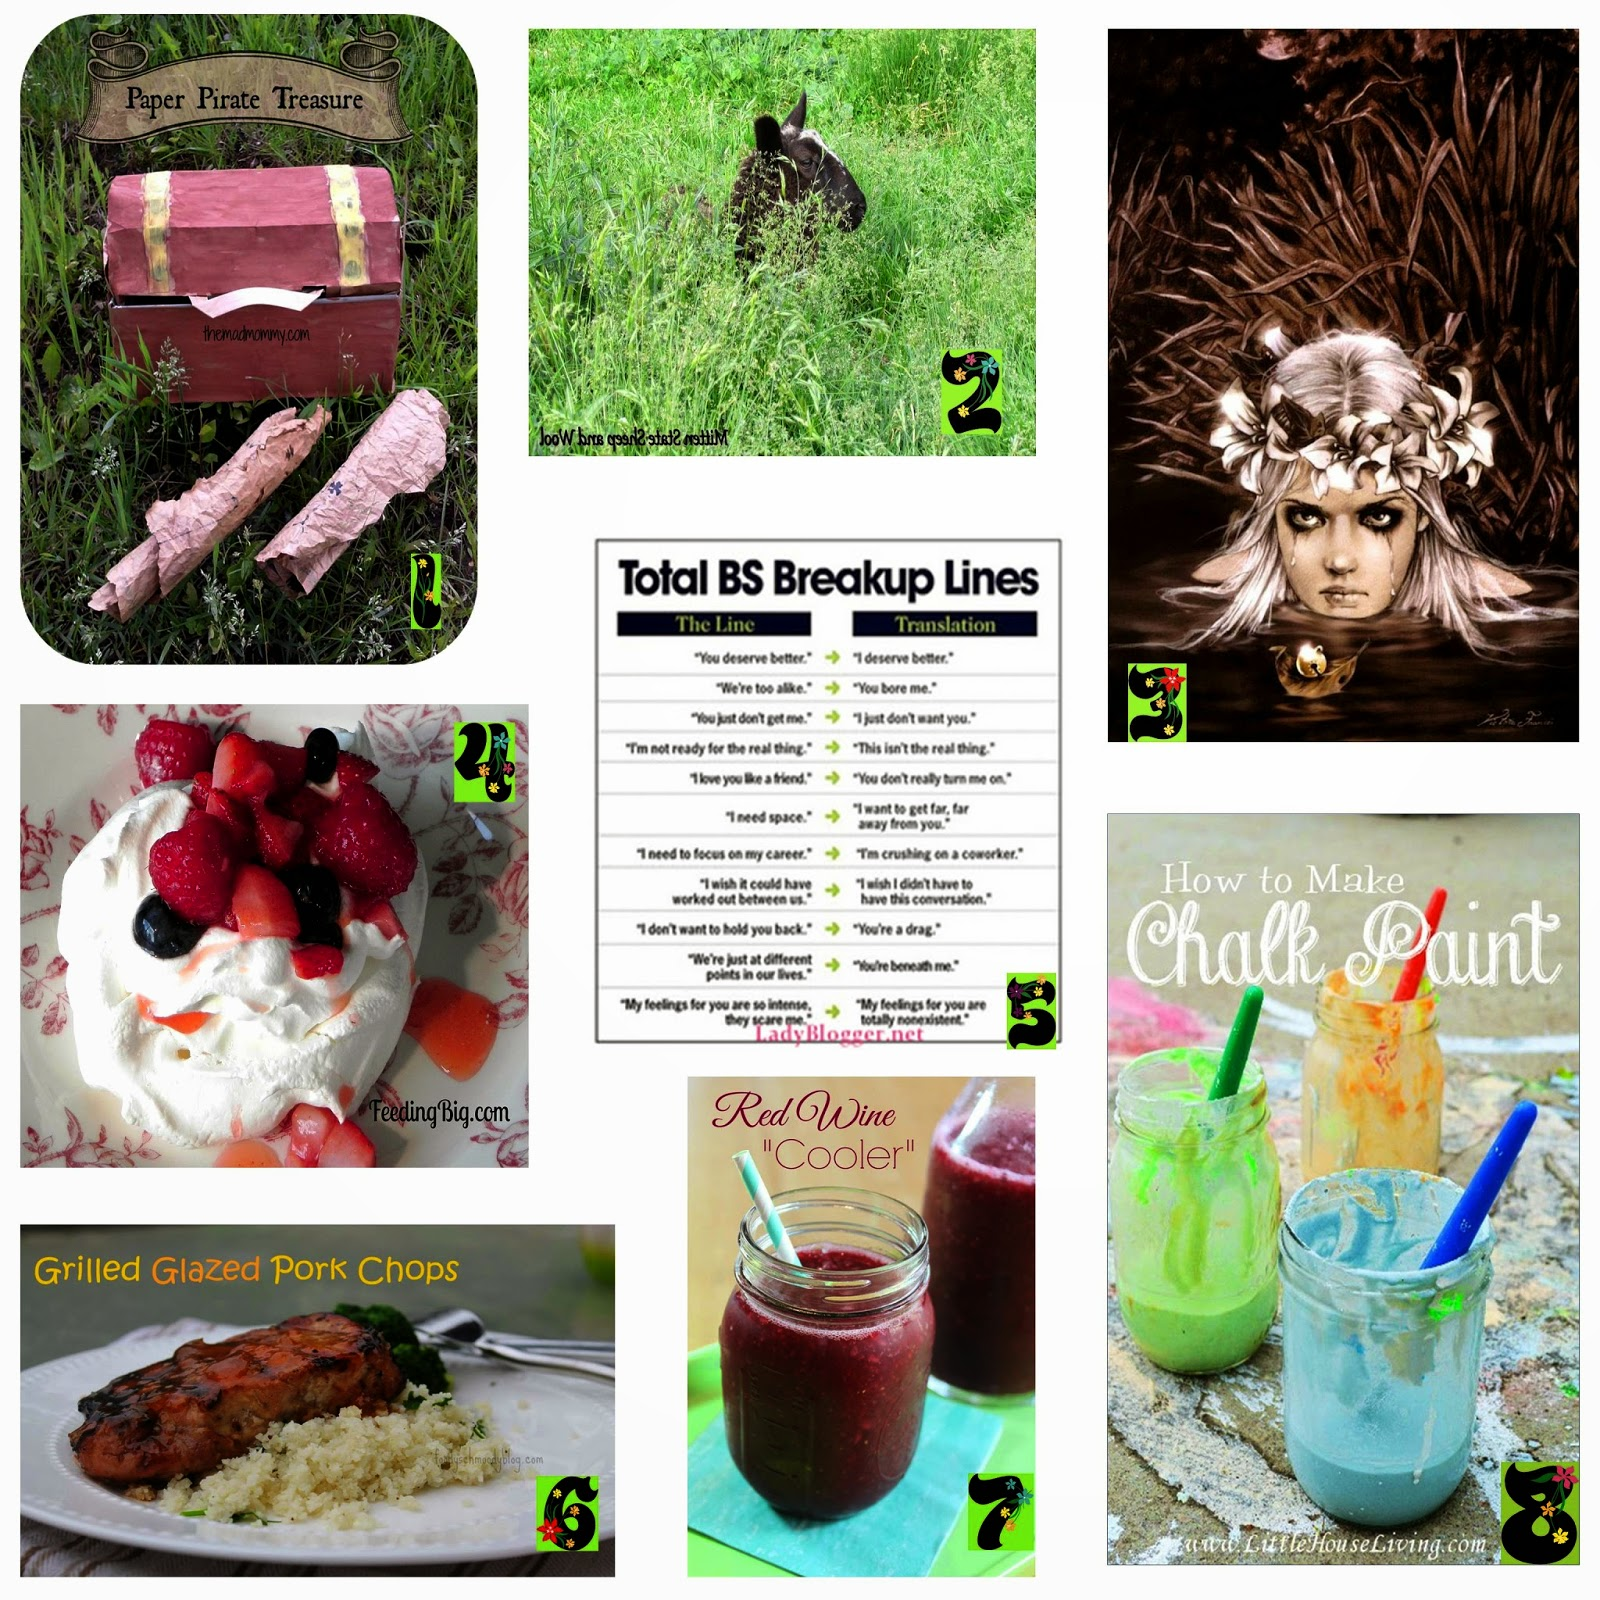 Featured Blogger - Easy Life Meal & Party Planning